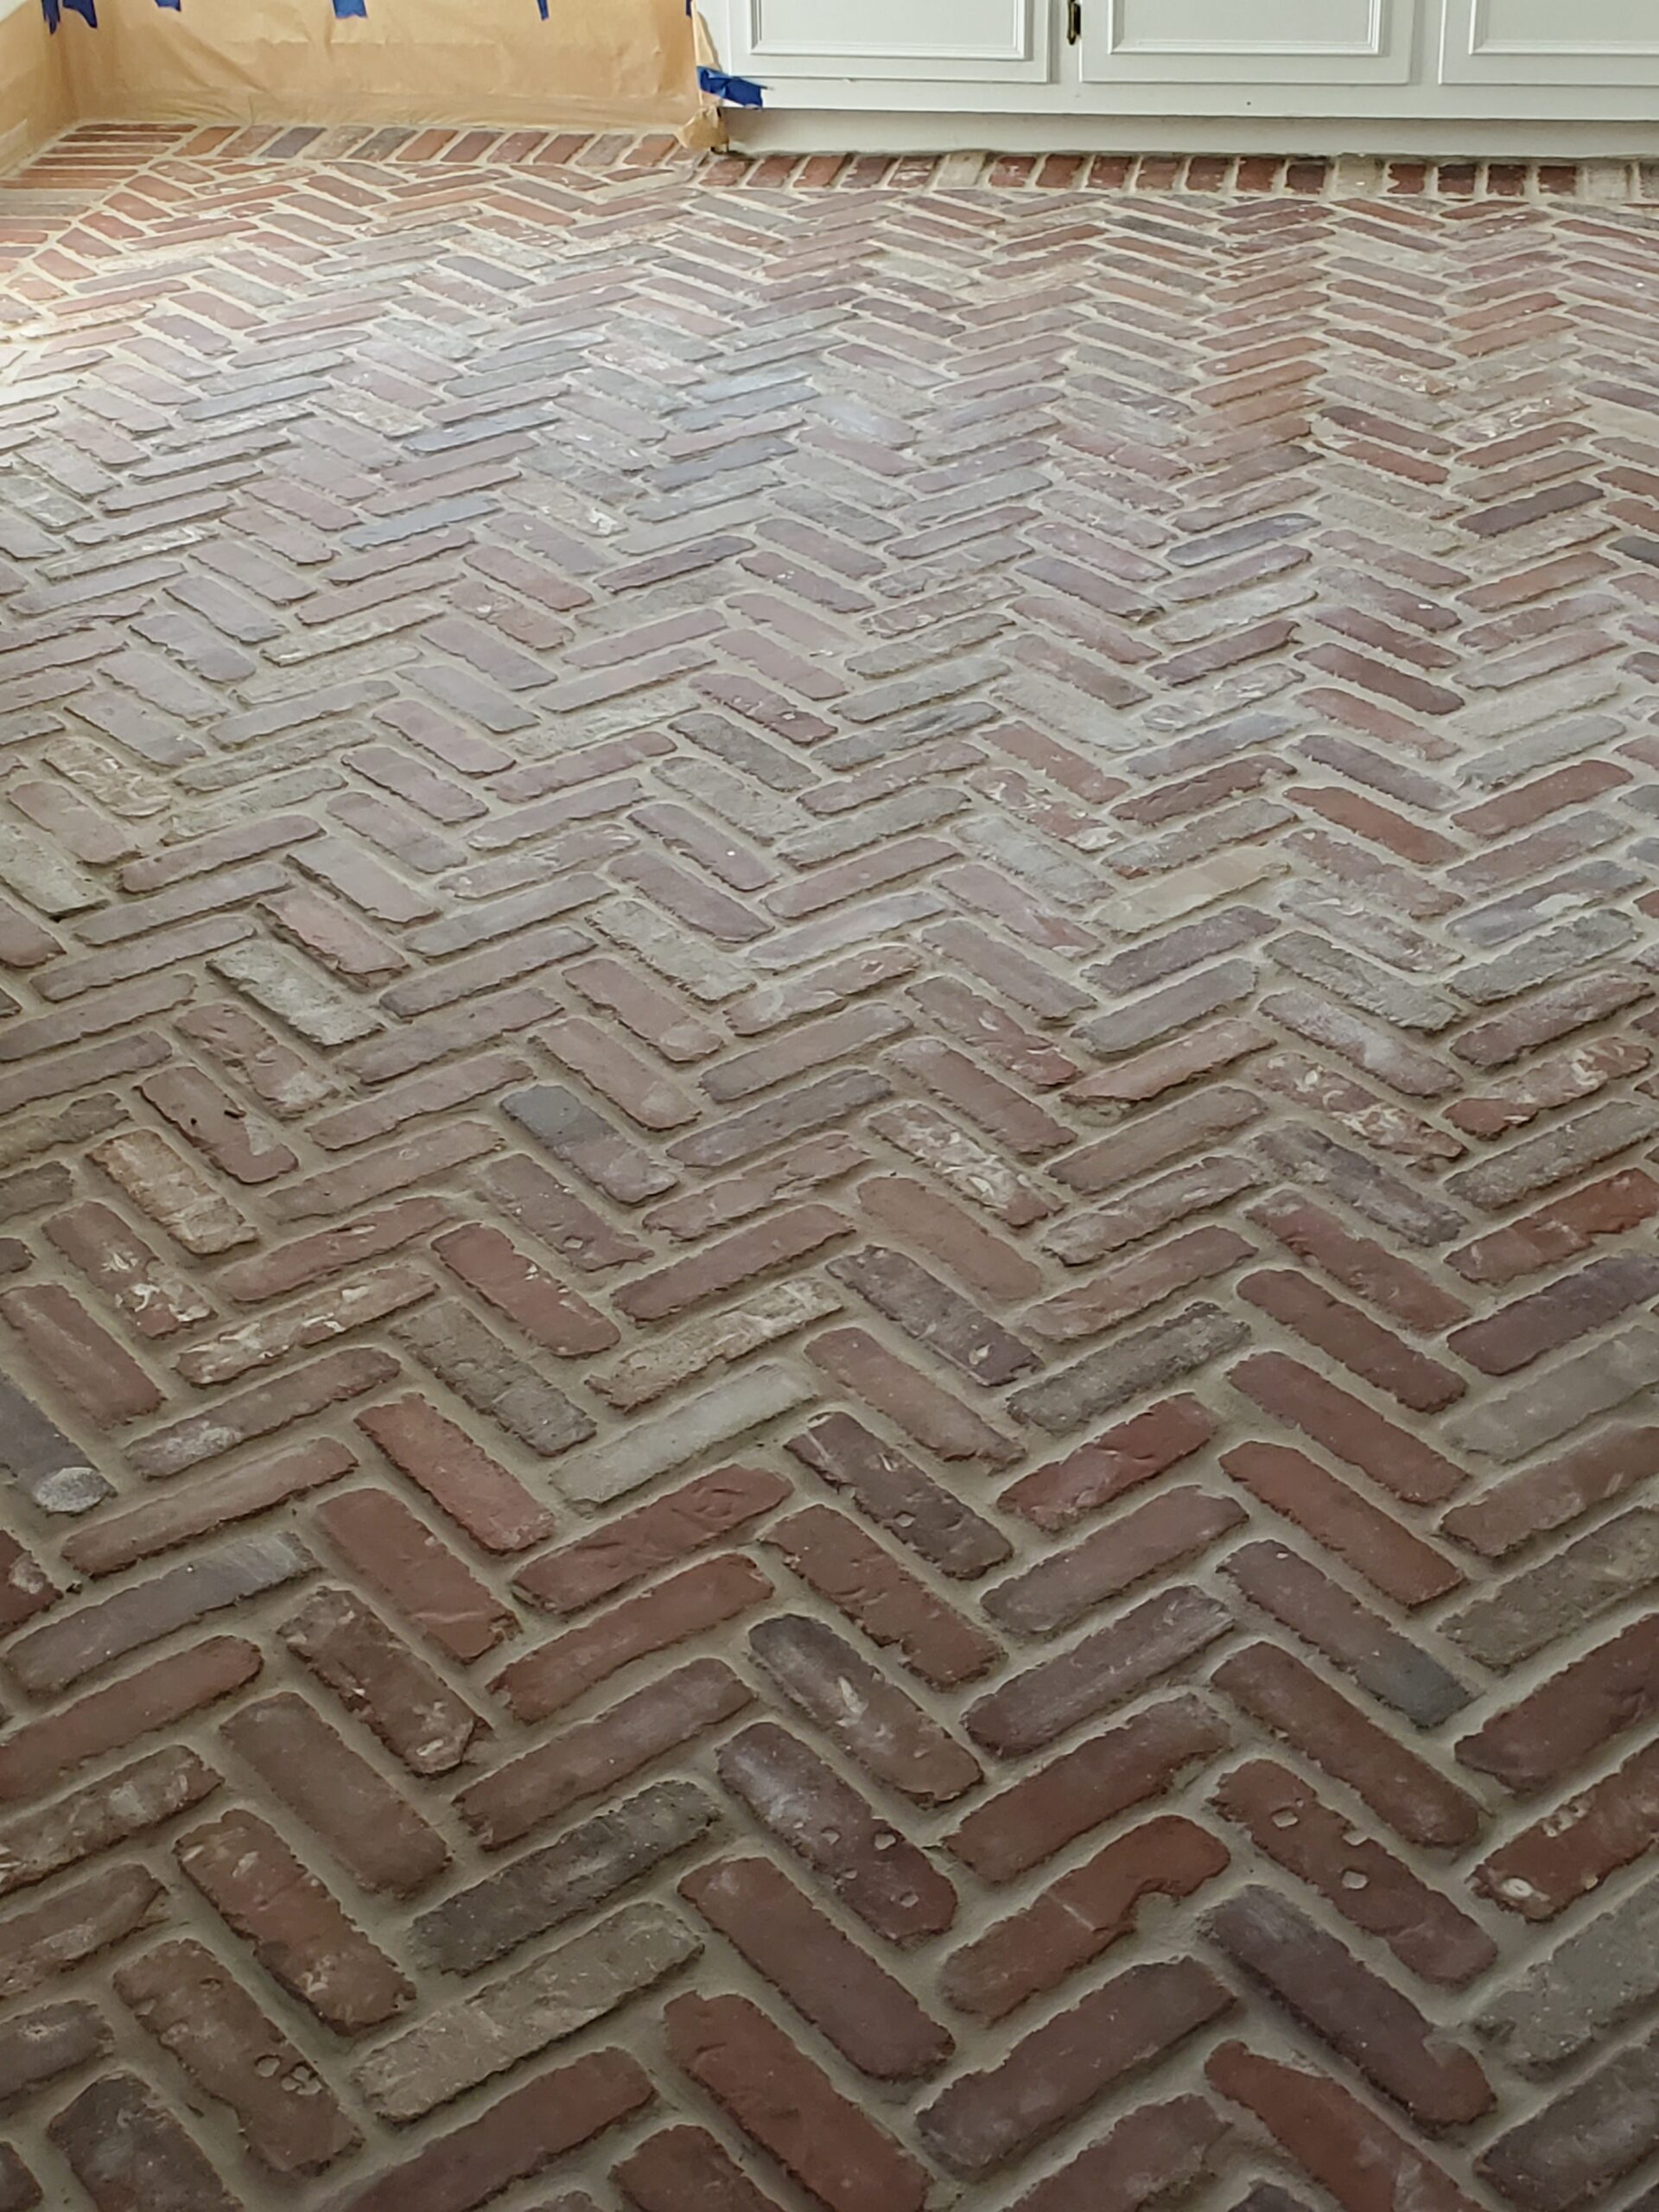 DIY Brick Paver floors Brick Paver floor Brick Kitchen Floor Grout herrinbone brick floor